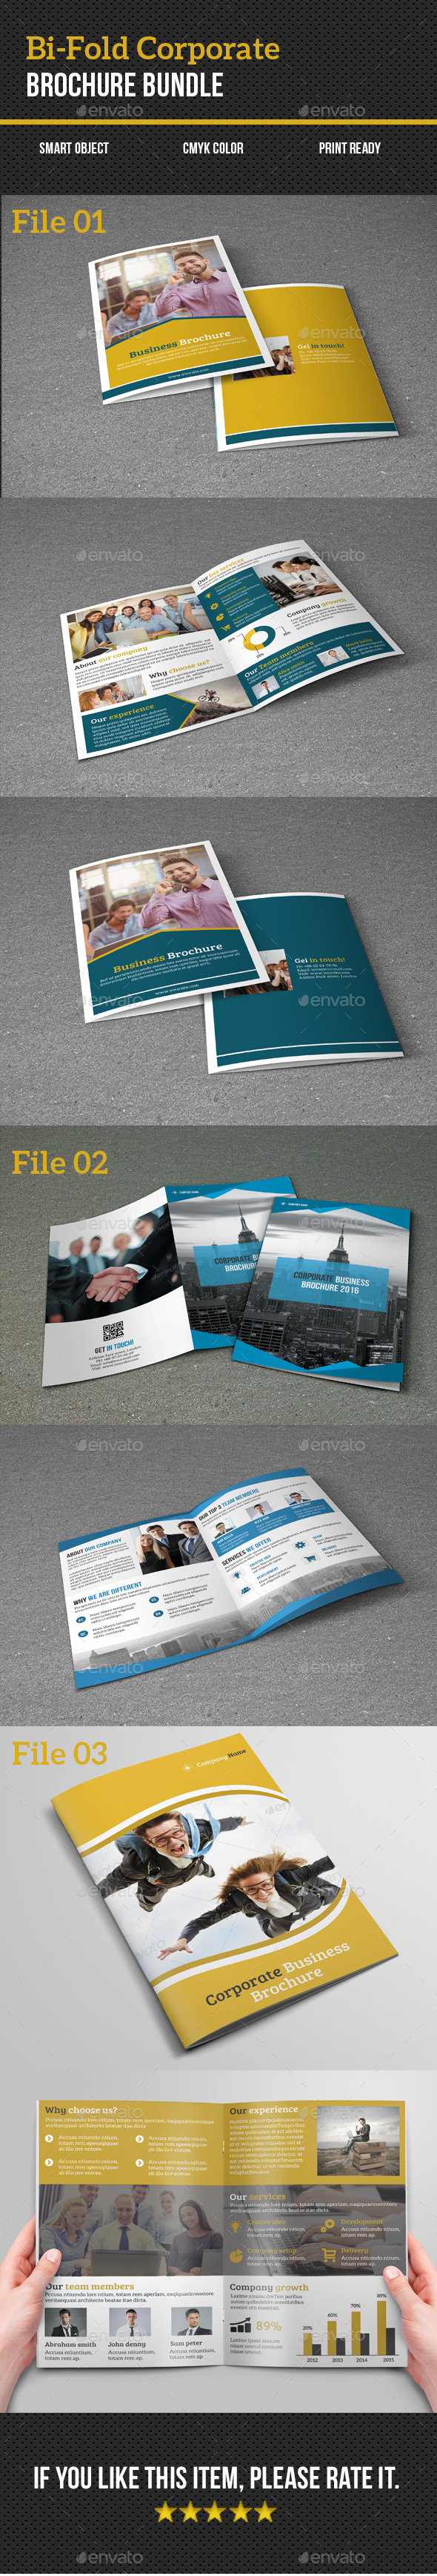 Bi-Fold Corporate Brochure Bundle - Corporate Brochures